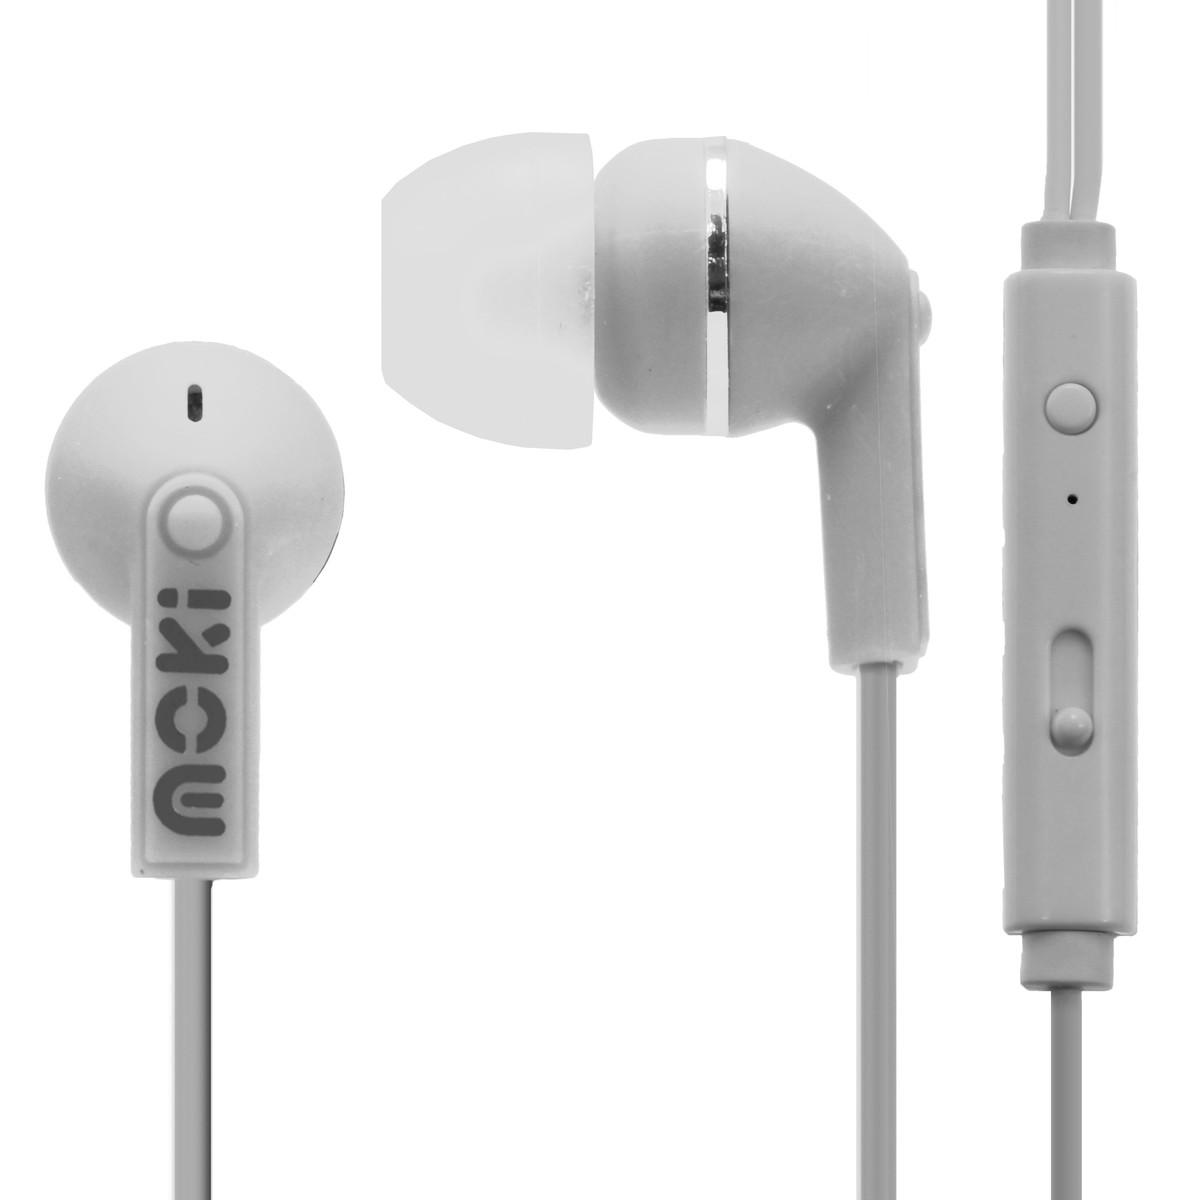 Moki Noise Isolation Earphones with Microphone Earbuds – White